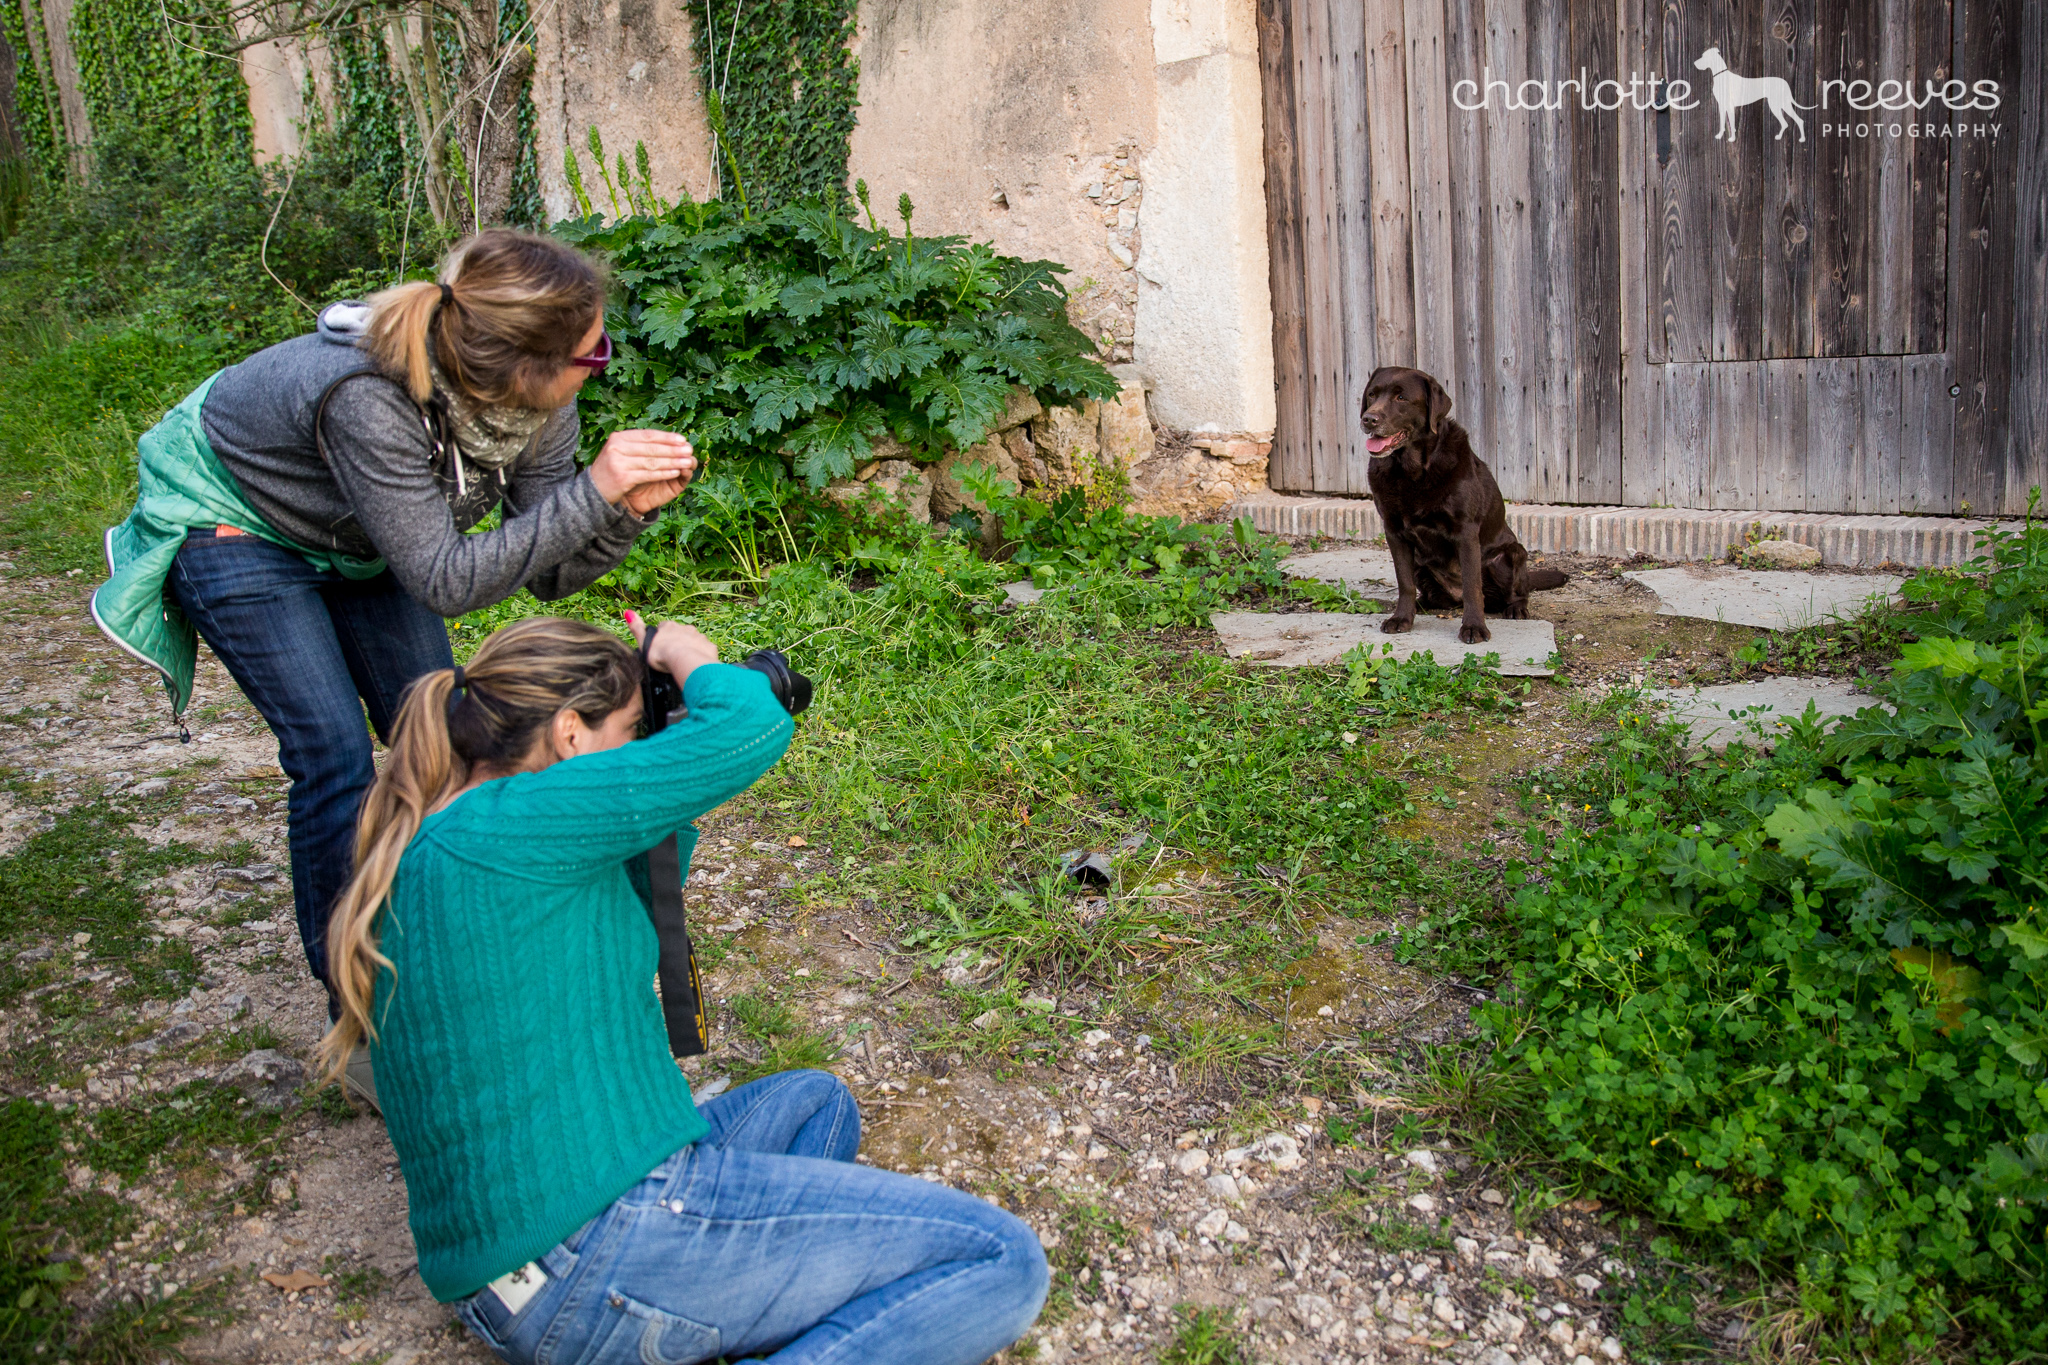 behind the scenes pet phtotography course